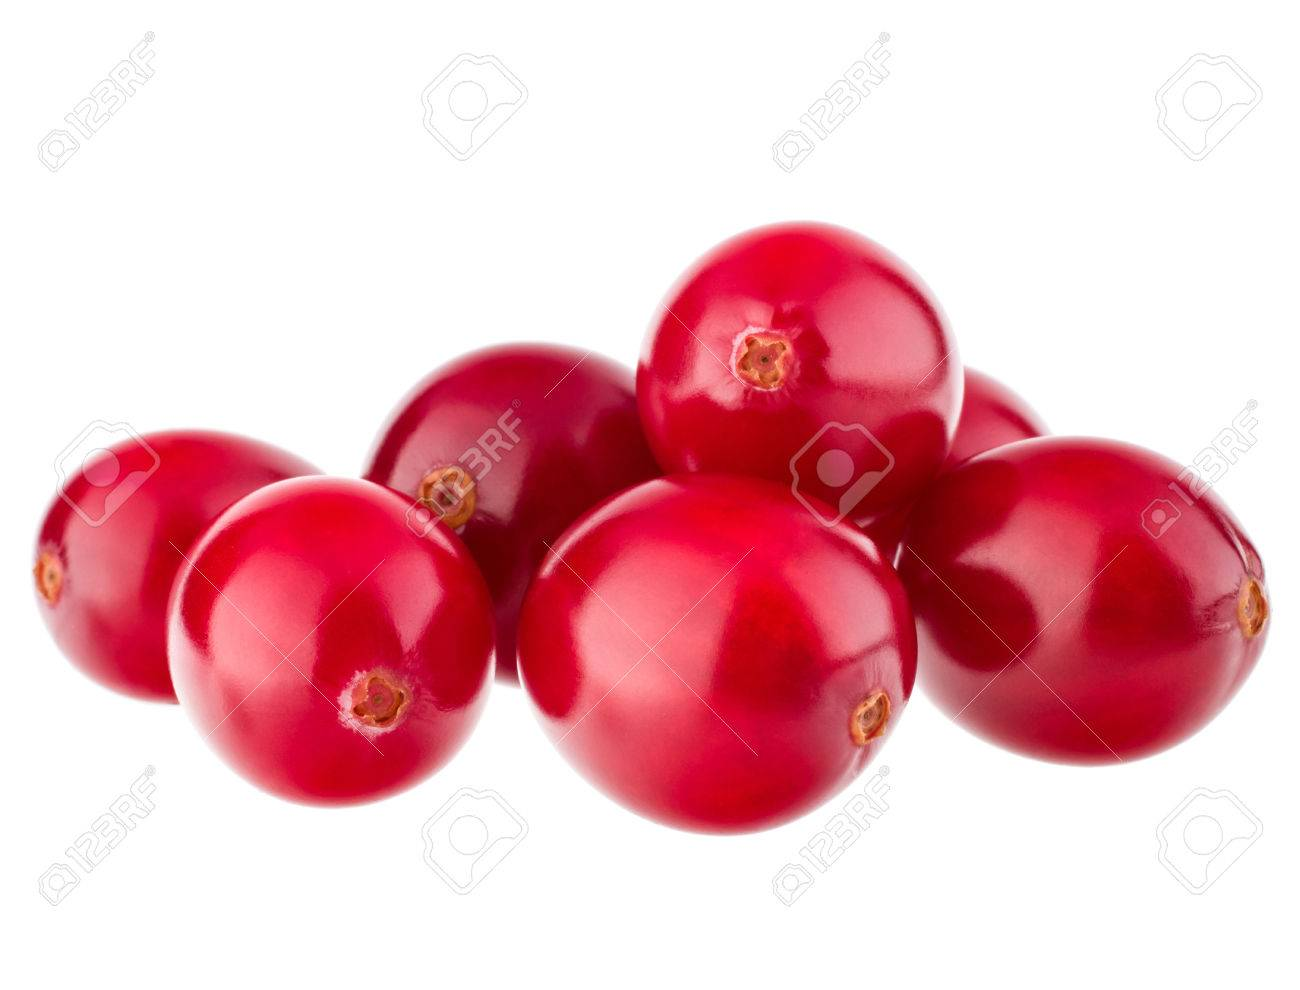 cranberry isolated on white background cutout - 31681795